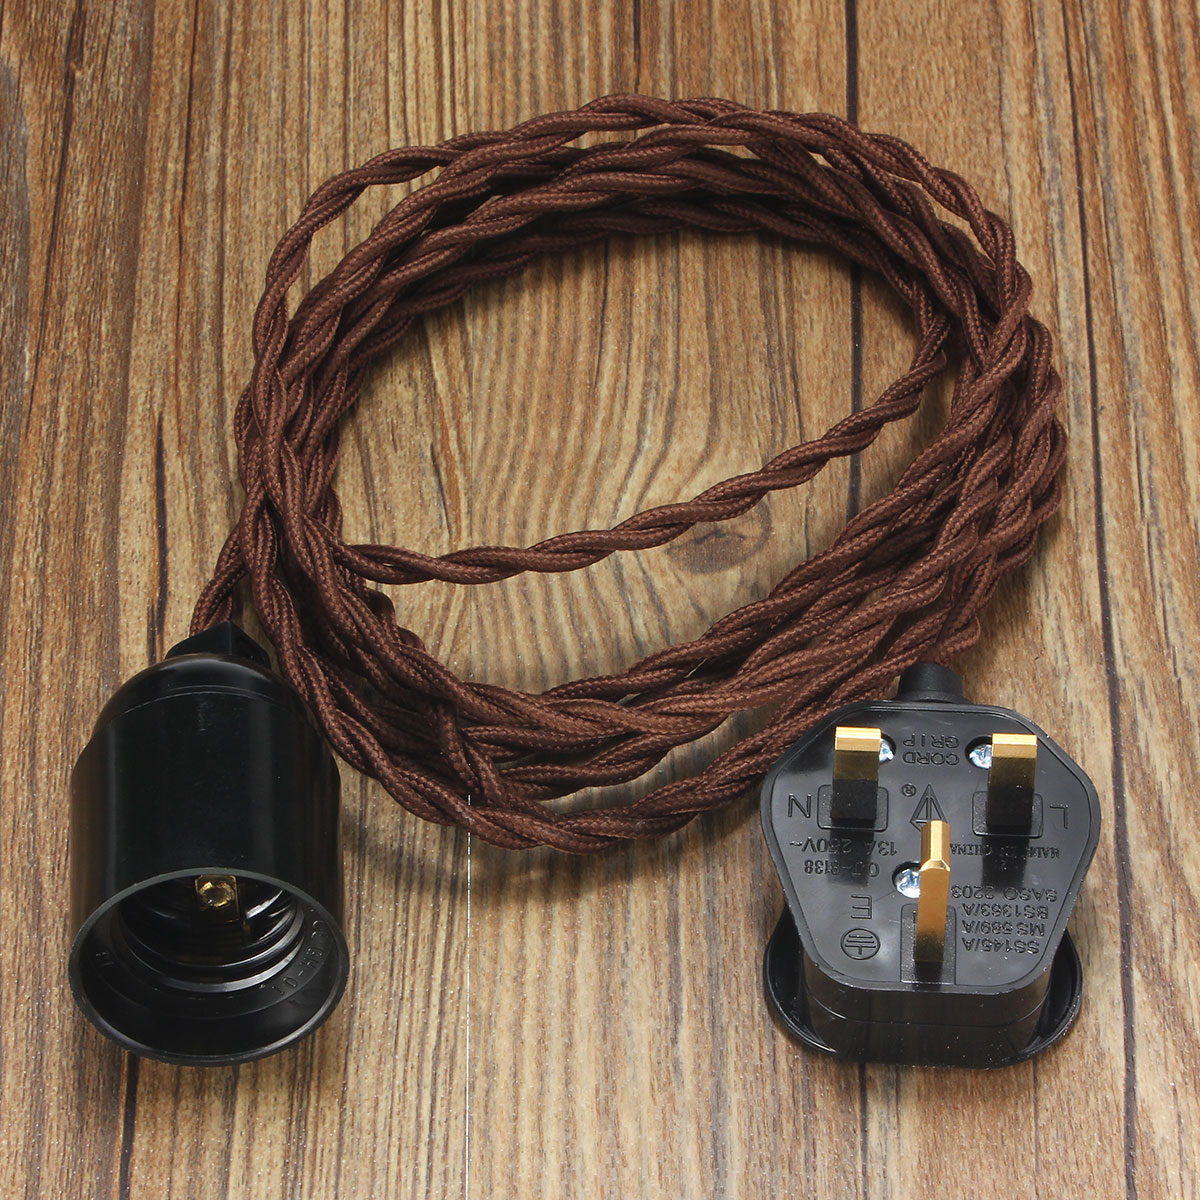 3M E27 Vintage Twisted Fabric Cable UK Plug In Pendant Lamp Light ... for Bulb Holder With Plug  75tgx